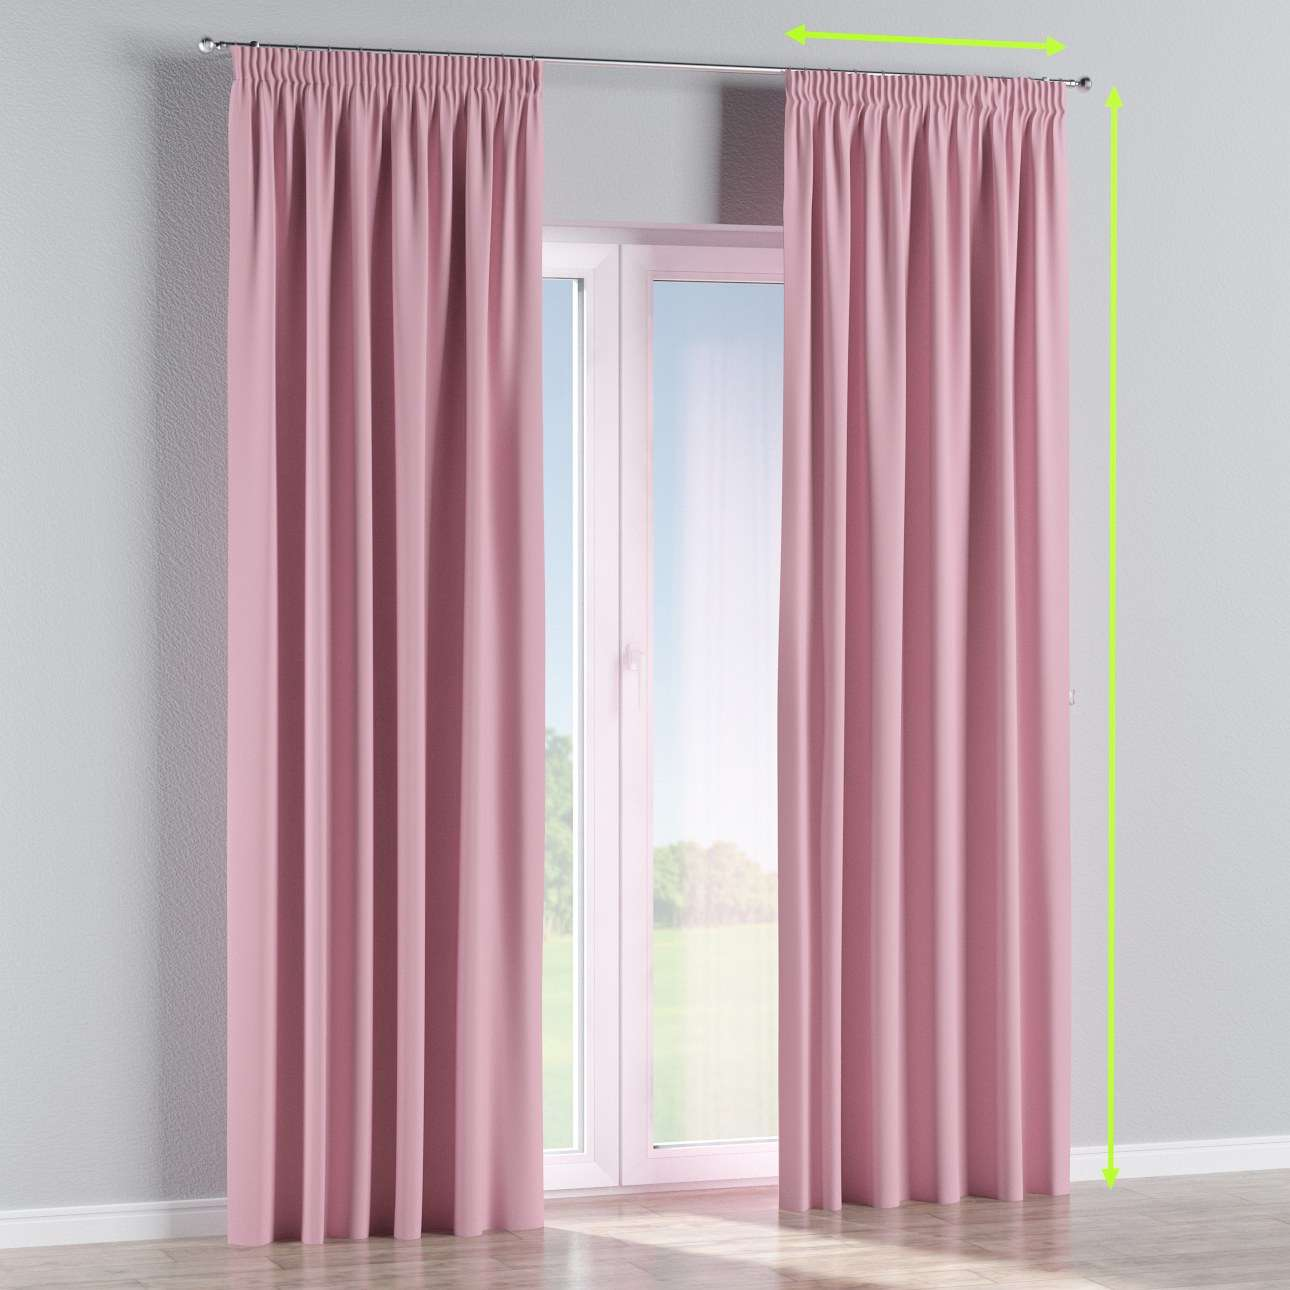 Pencil pleat curtain in collection Blackout, fabric: 269-92